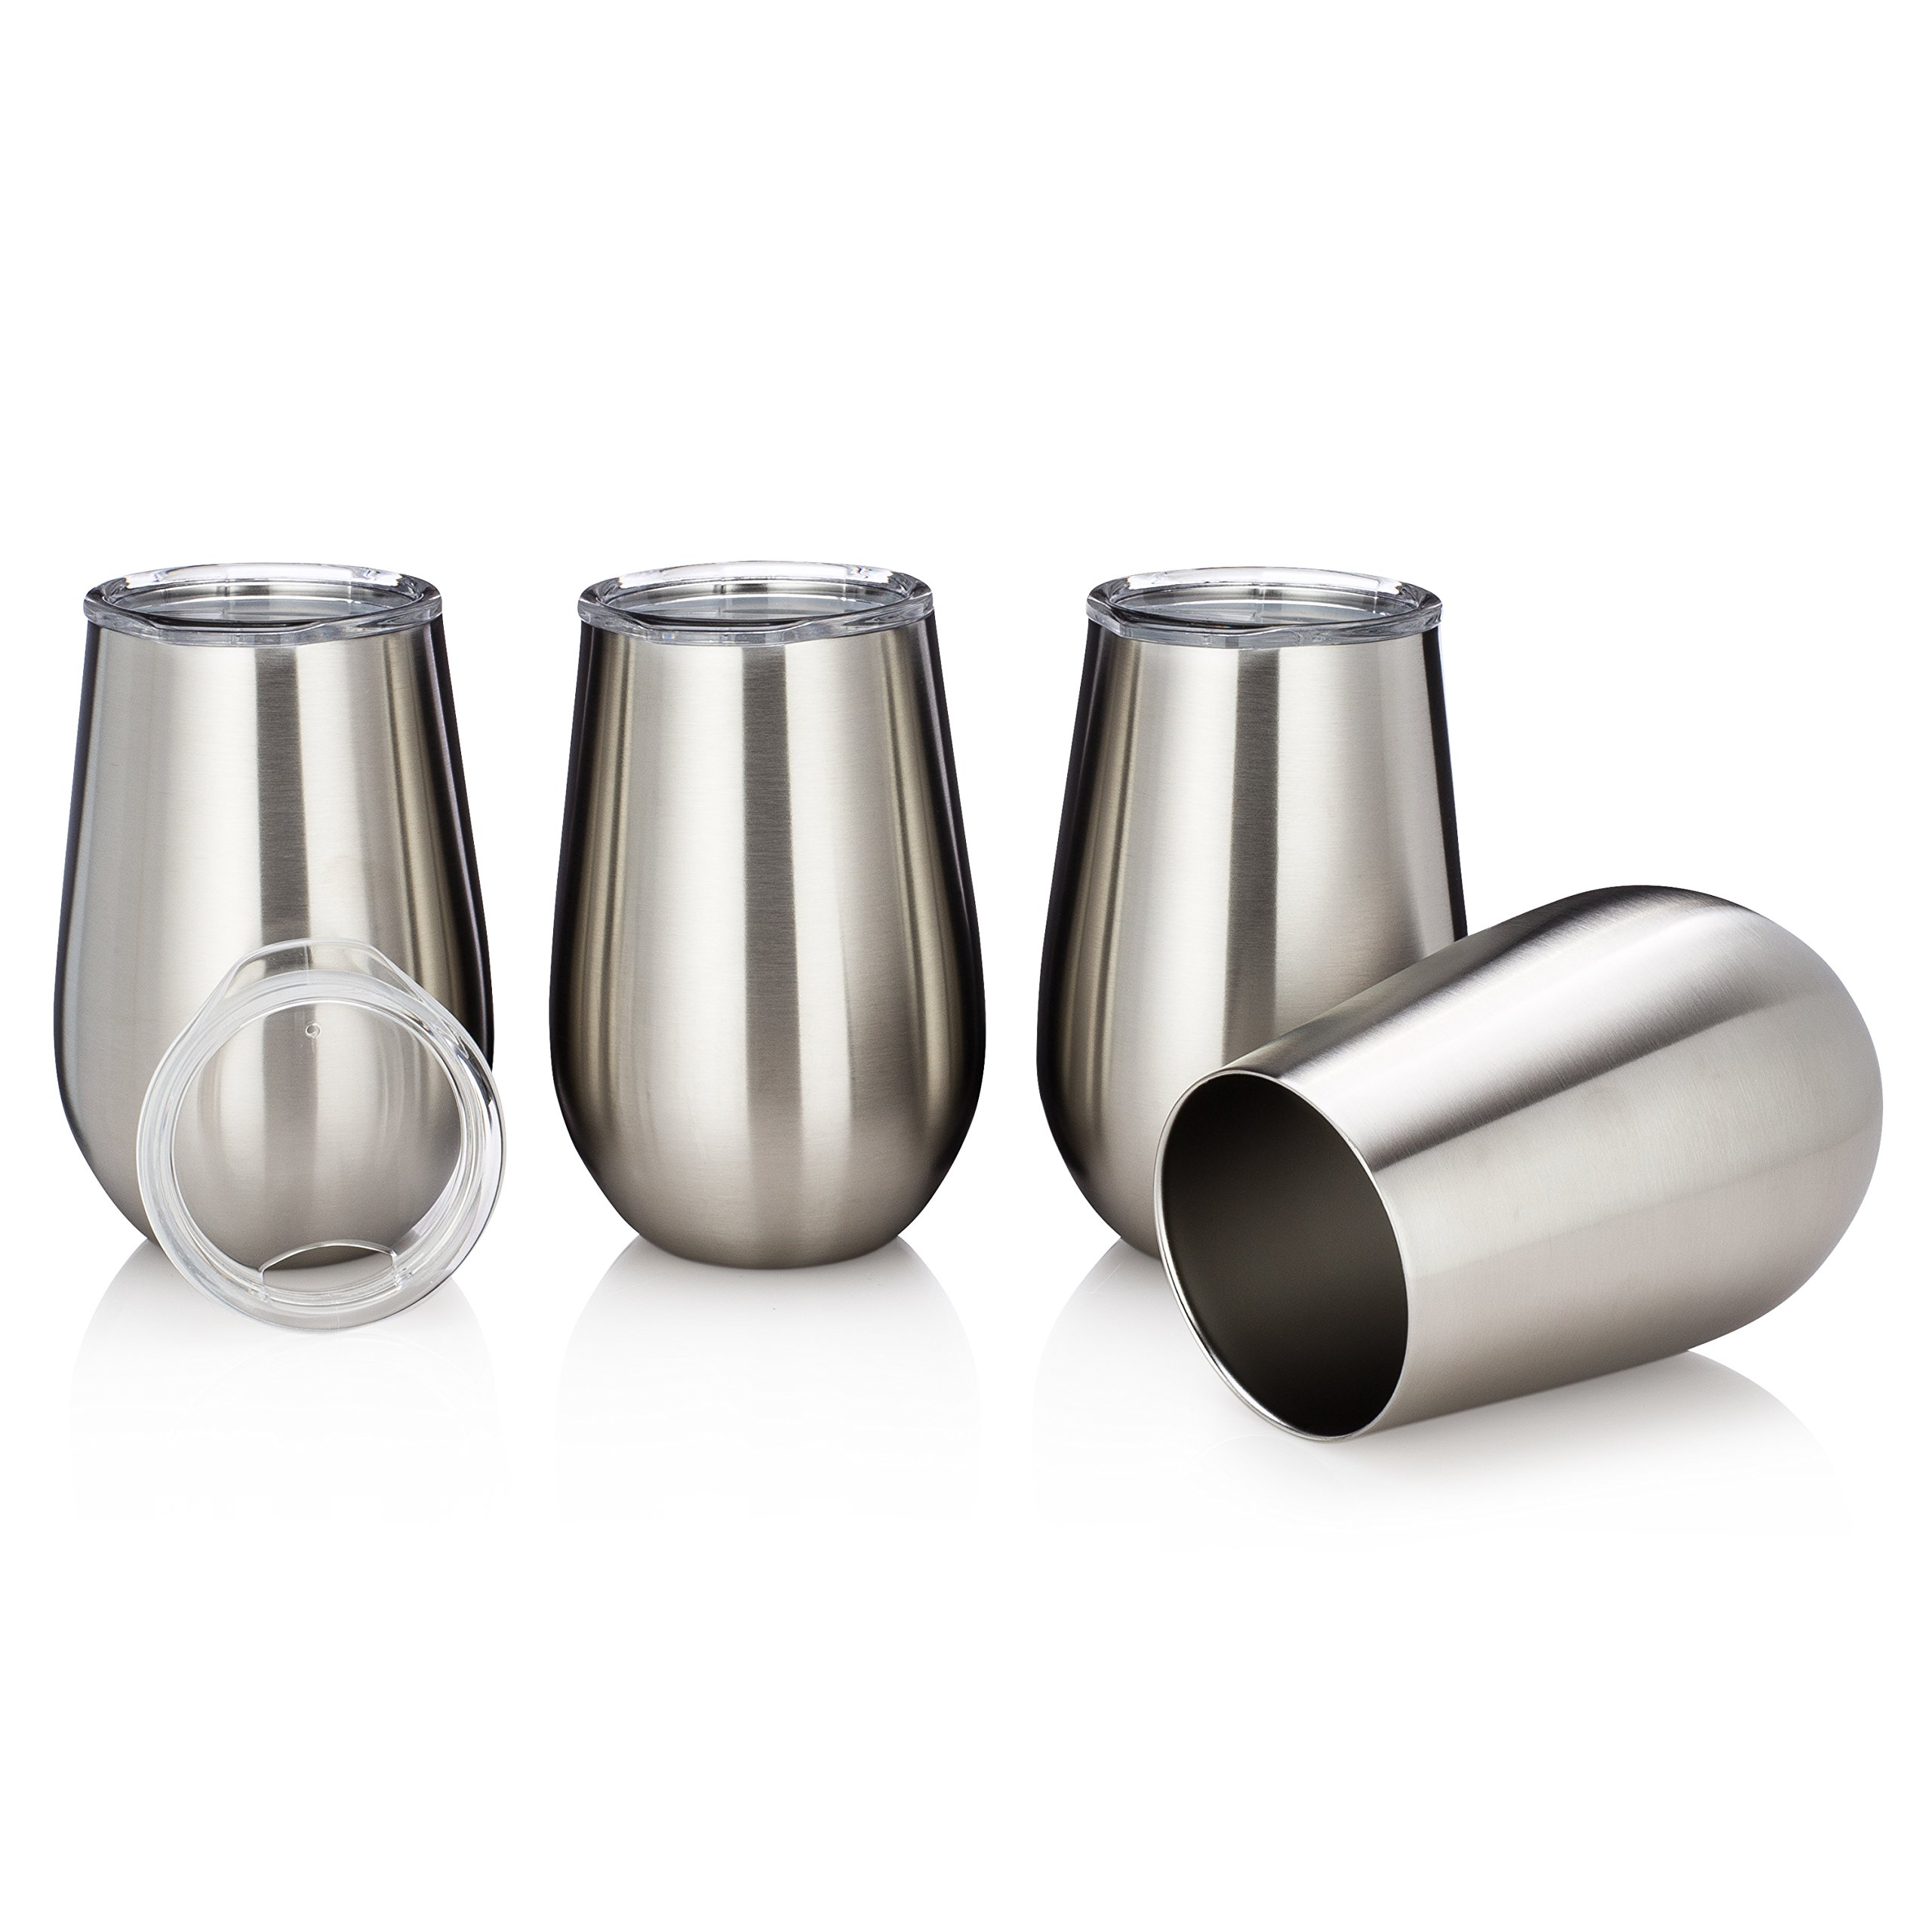 Vacuum Insulated Wine Glasses with Lids - Stainless Steel Stemless Wine Cups - Set of 2 Wine Tumblers with Clear Lids - 12 Oz - Shatterproof - BPA Free Healthy Choice - Best Value - By Avito